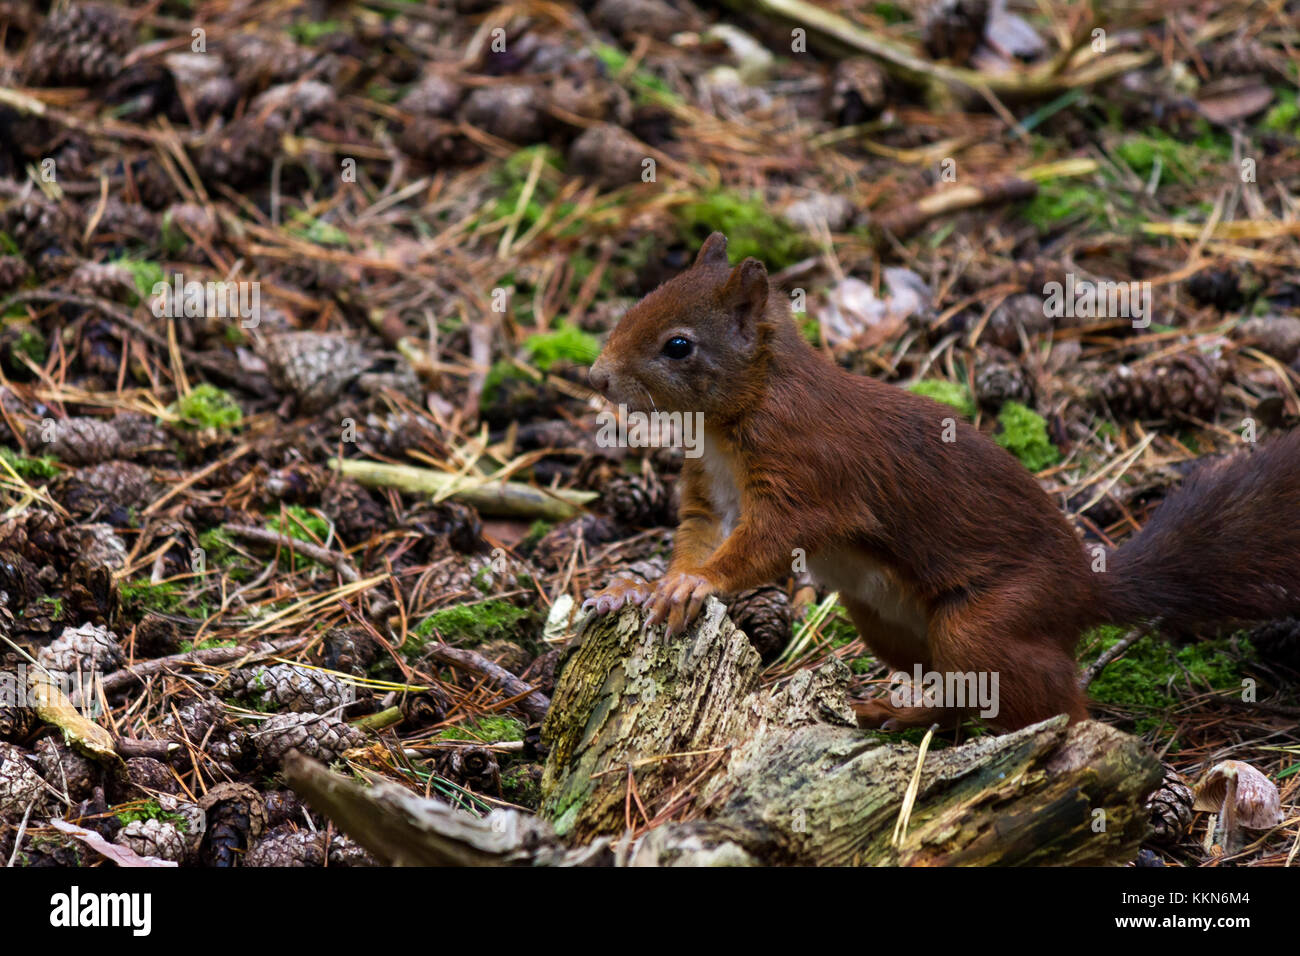 A Red Squirrel at the Red Squirrel Reserve, Formby, Merseyside, UK - Stock Image